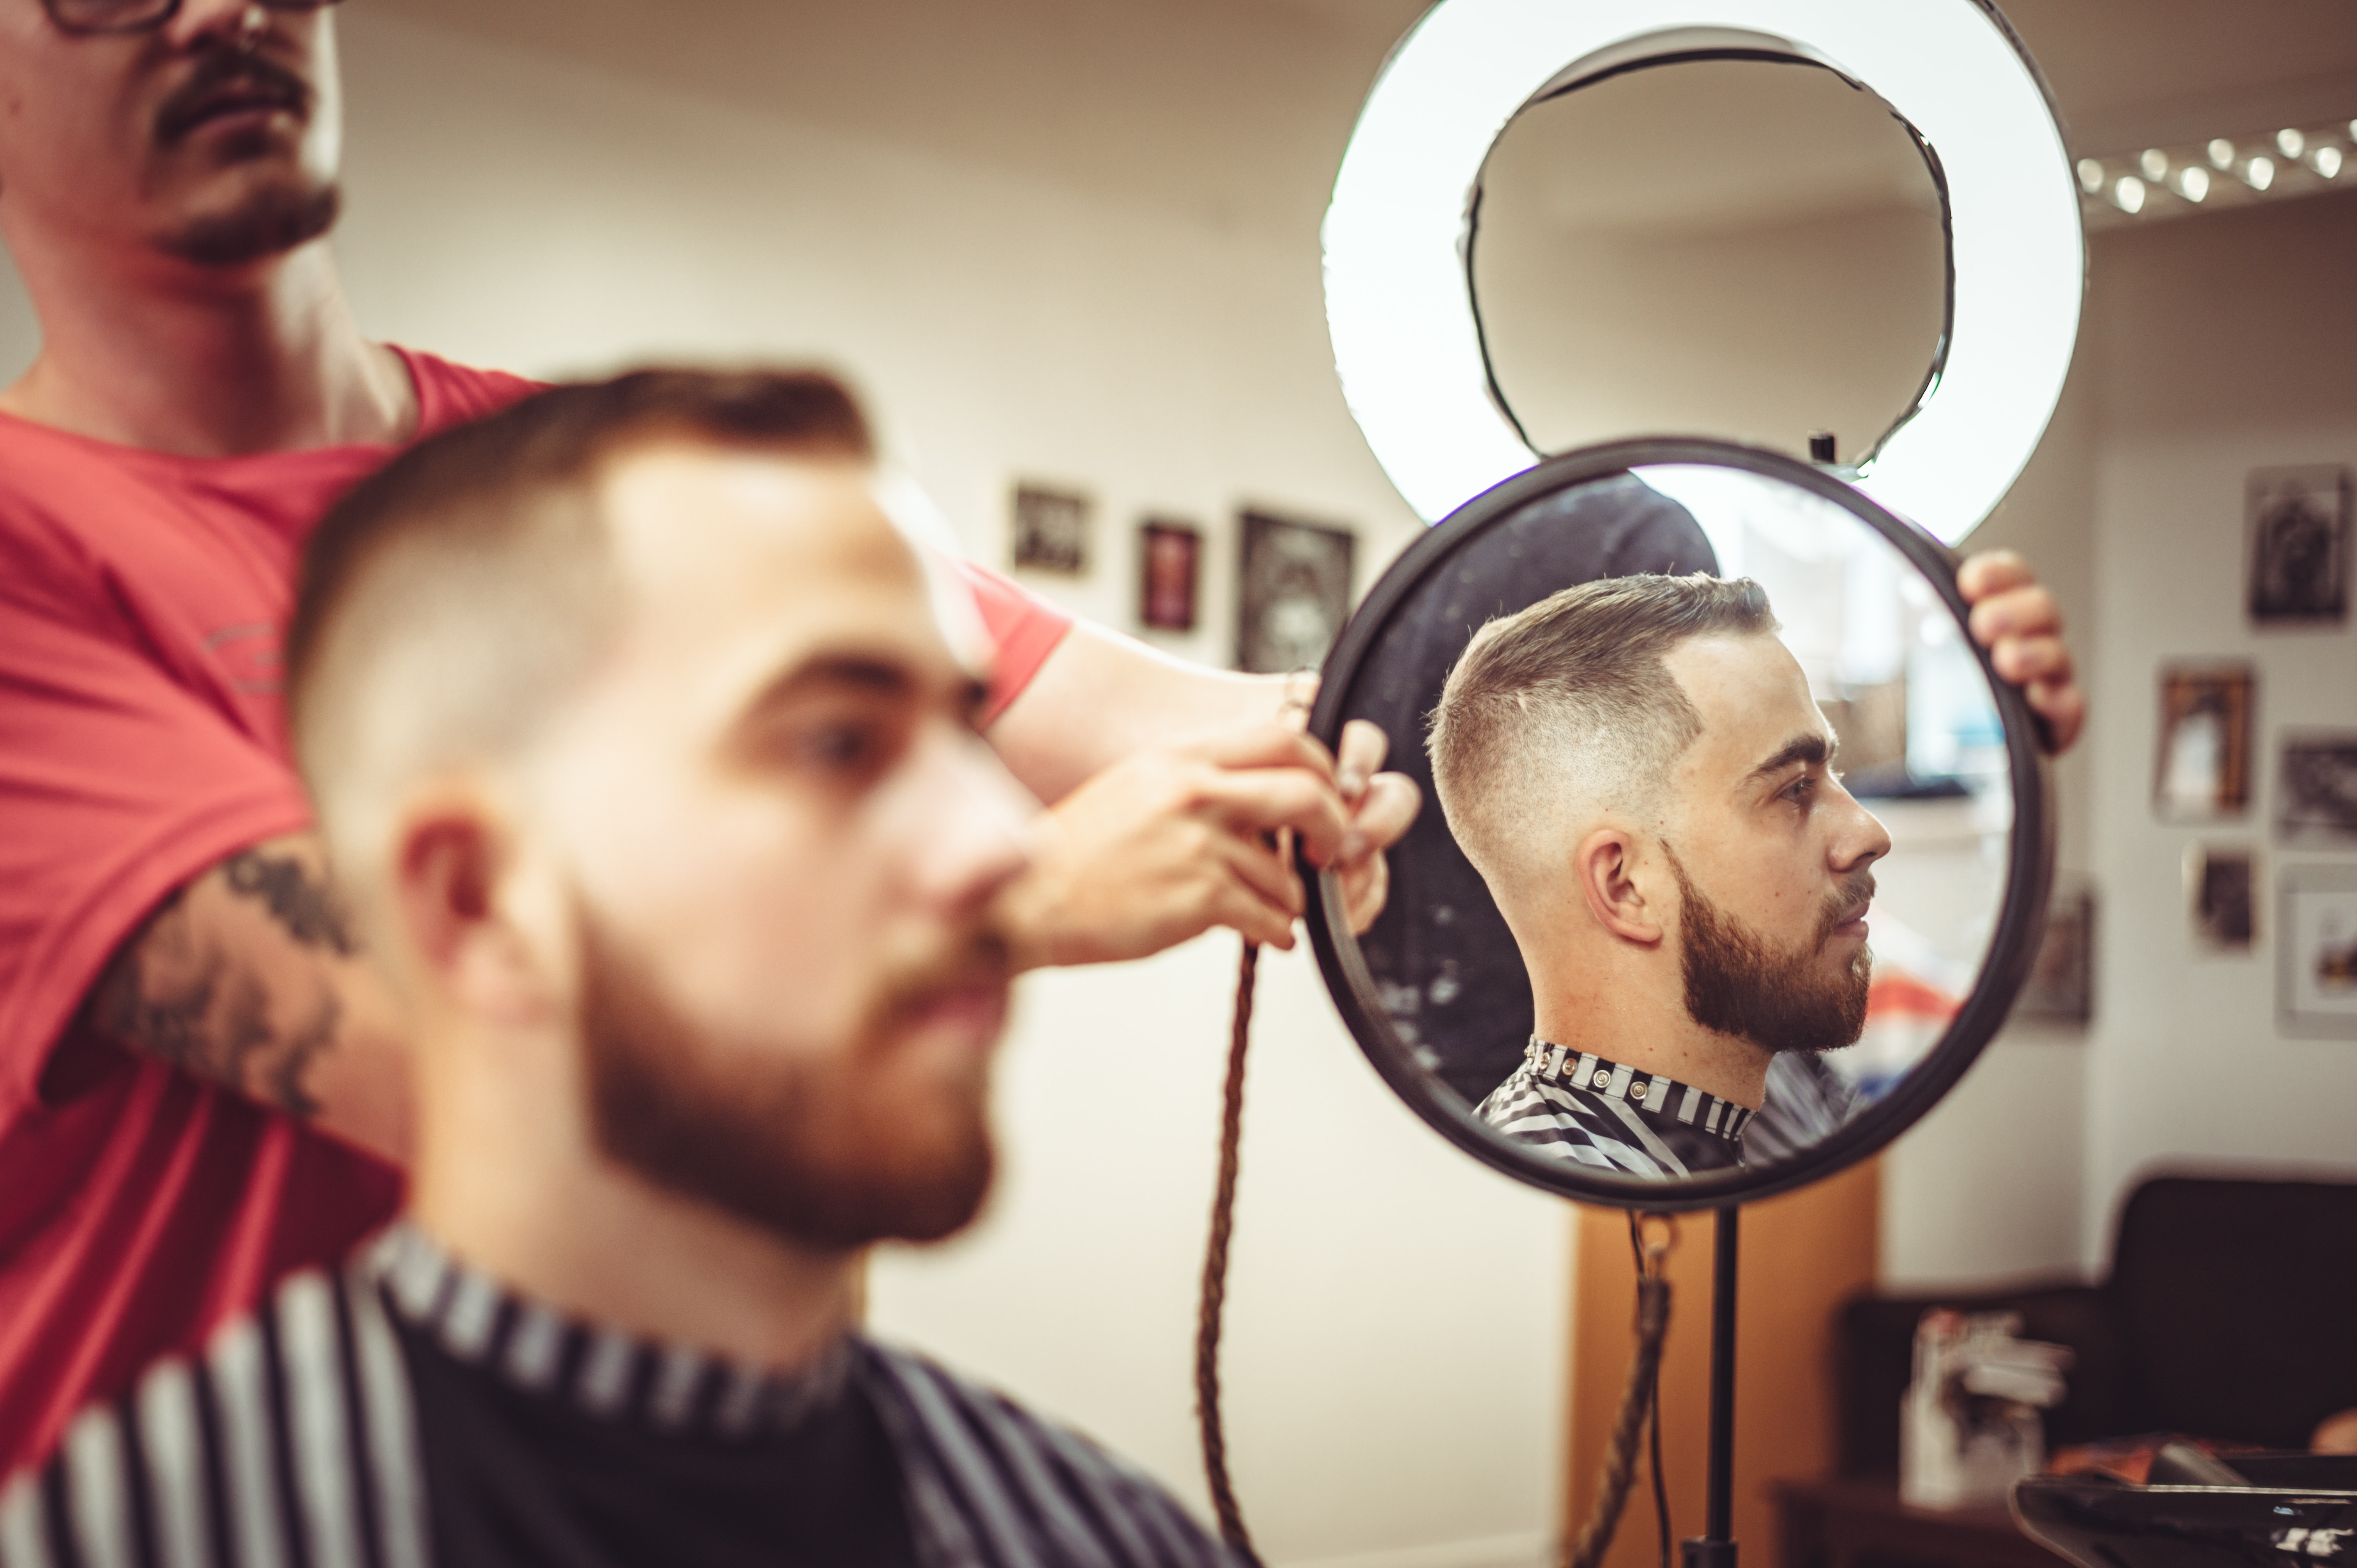 Men's Hairstylists & Barbers Luxembourg